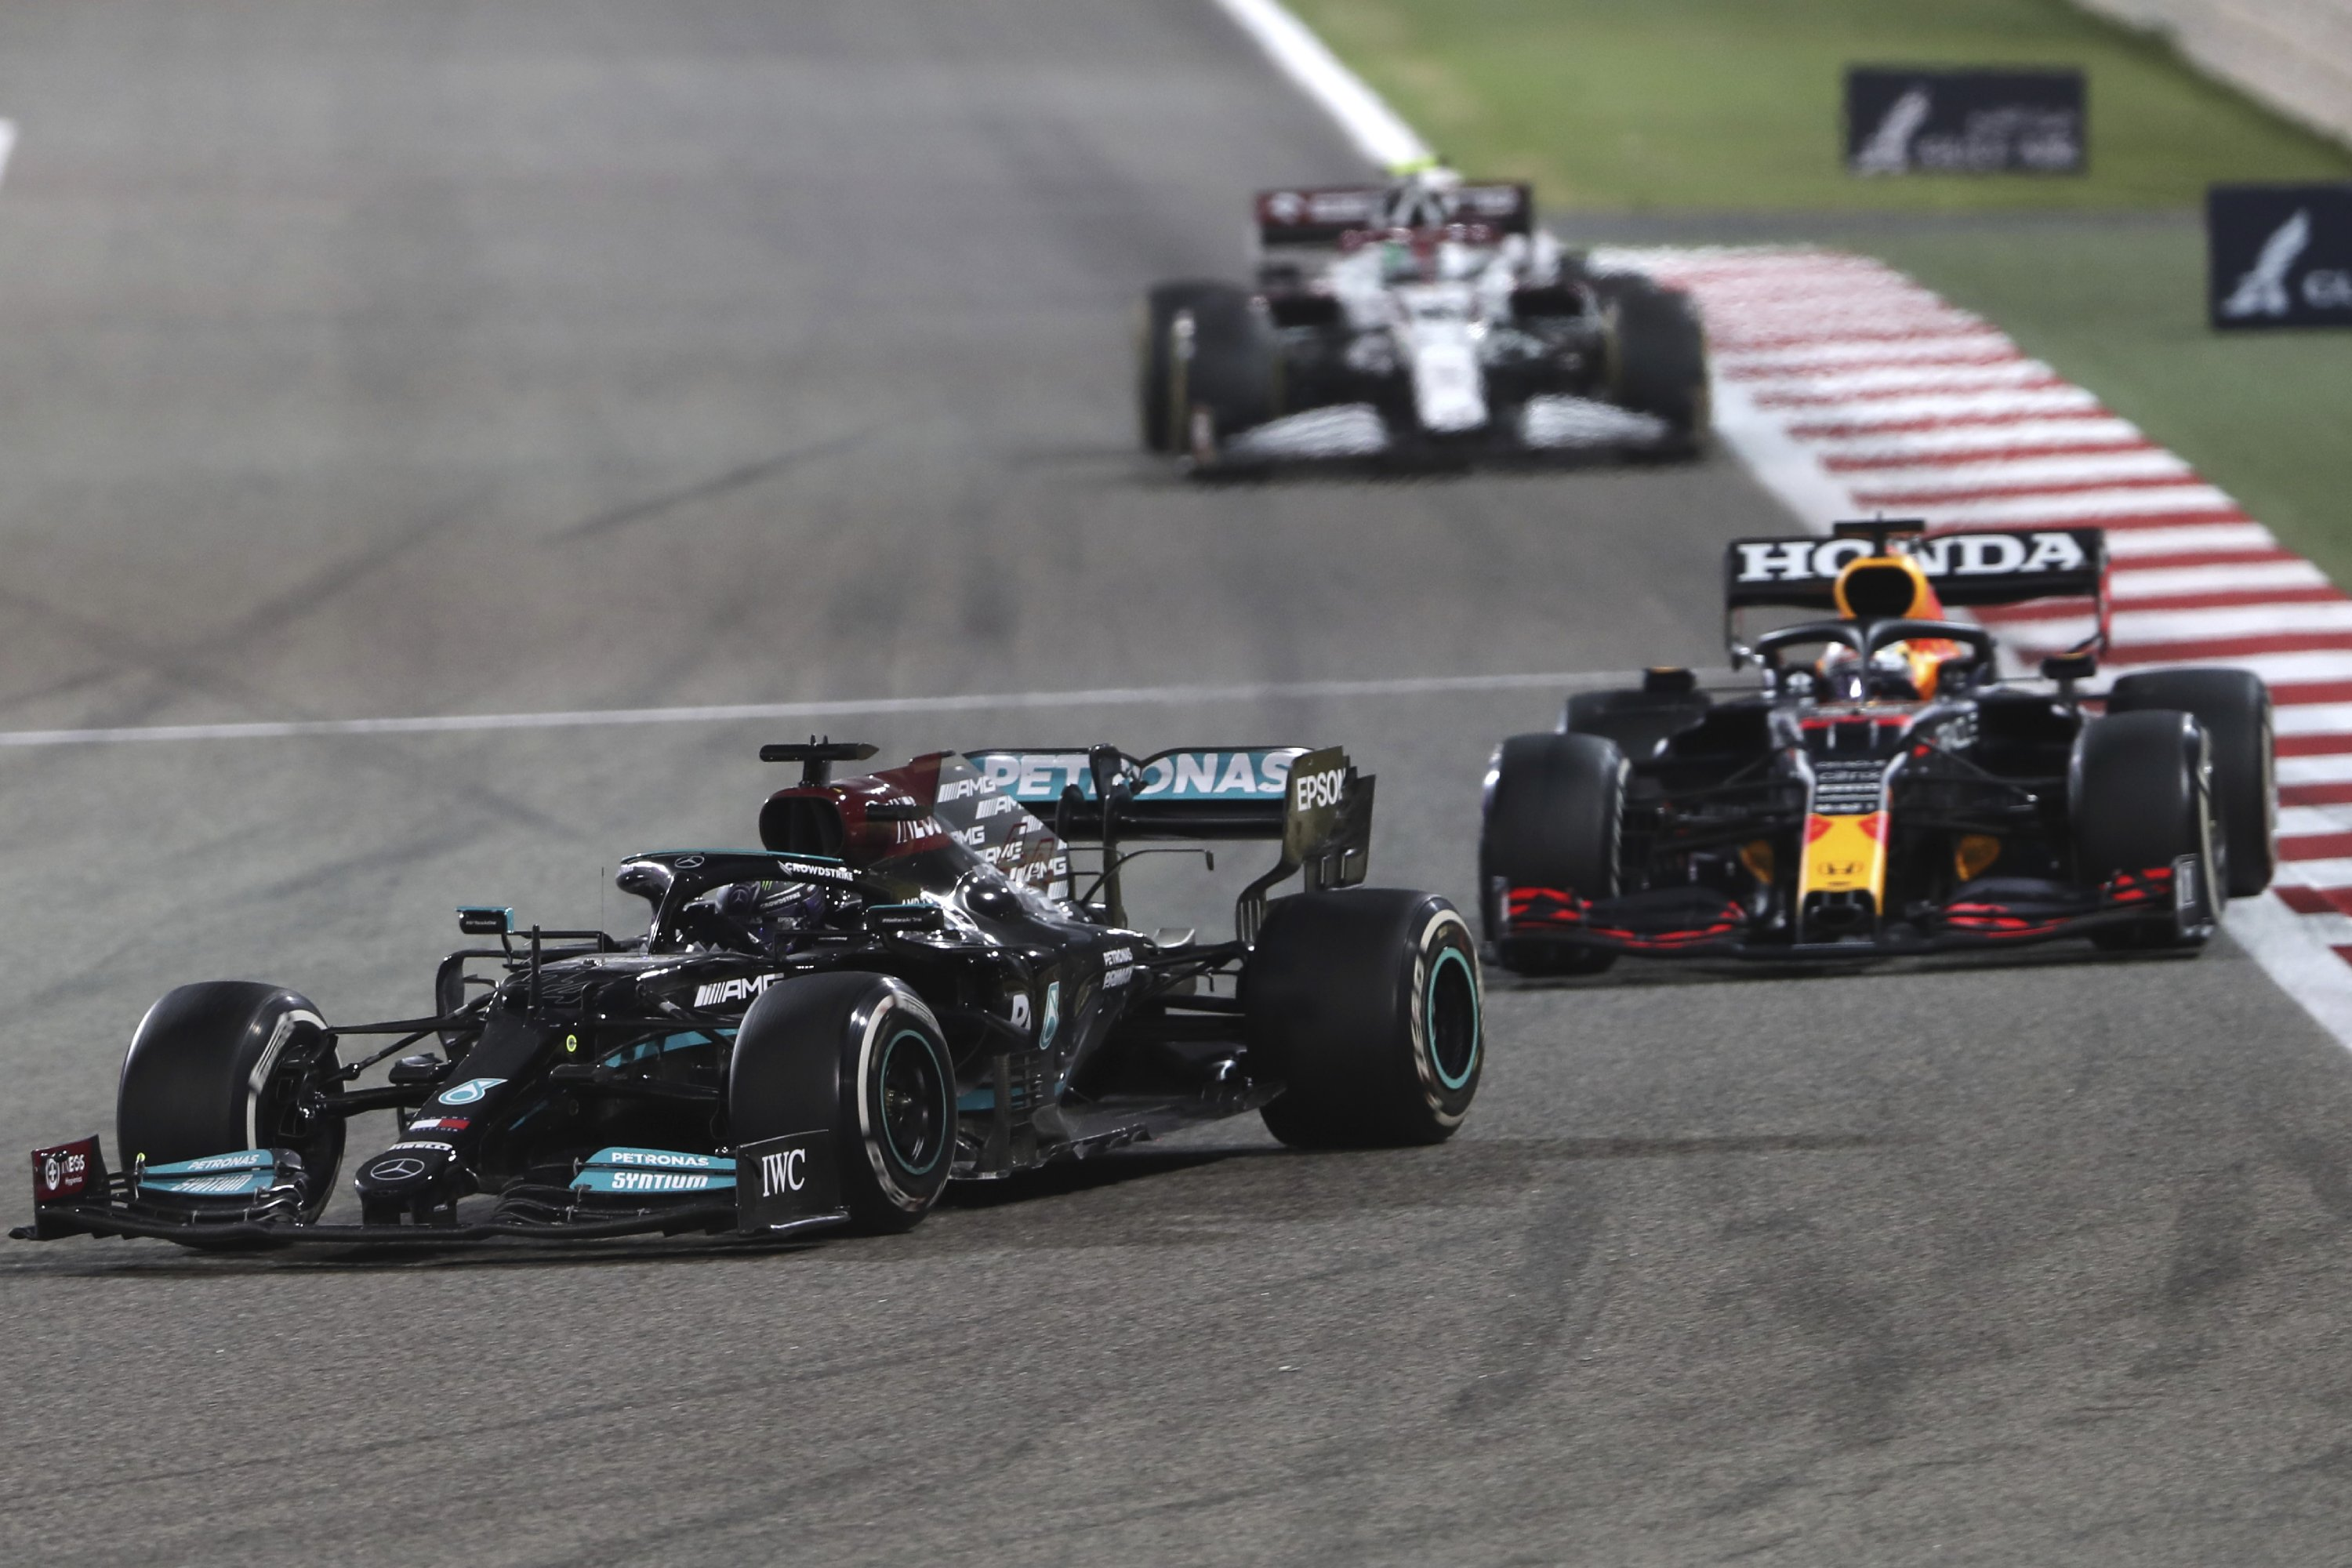 Mercedes driver Lewis Hamilton of Britain steers his car followed by Red Bull driver Max Verstappen of the Netherlands during the Bahrain Formula One Grand Prix at the Bahrain International Circuit in Sakhir, Bahrain, March 28, 2021. (AP Photo)